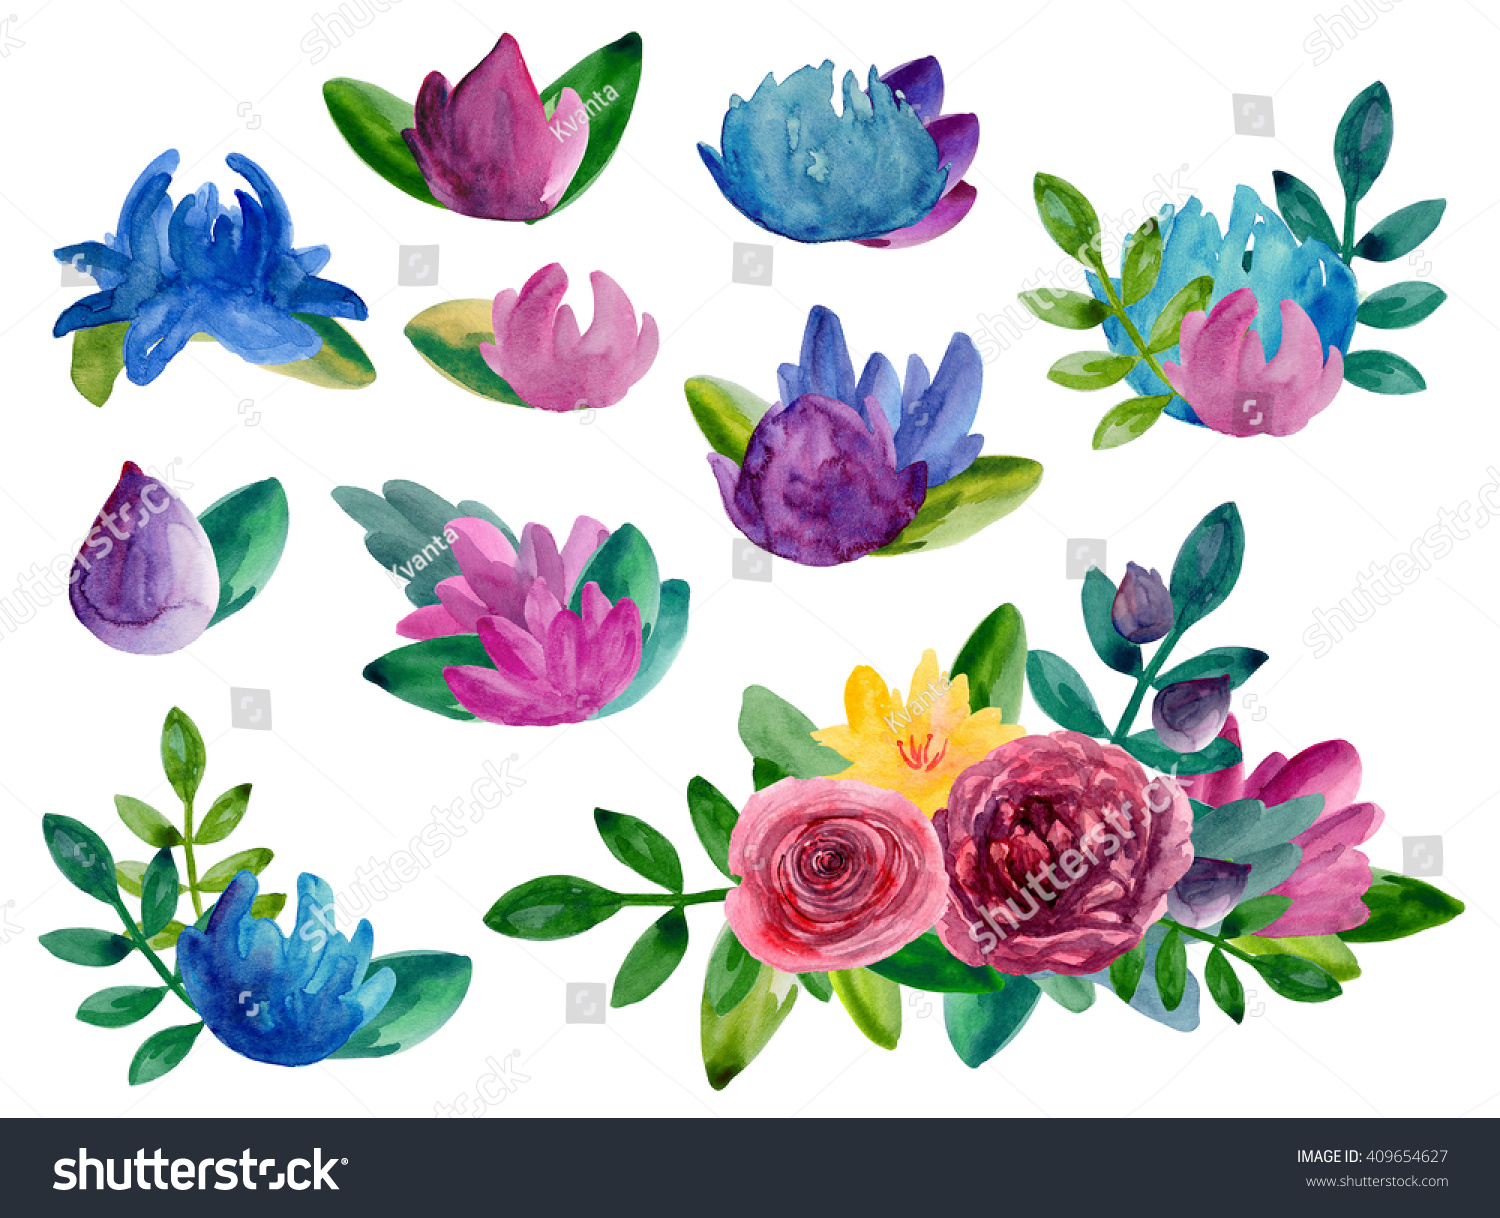 Watercolor Abstract Flowers Bouquets Clipart Floral Stock ...